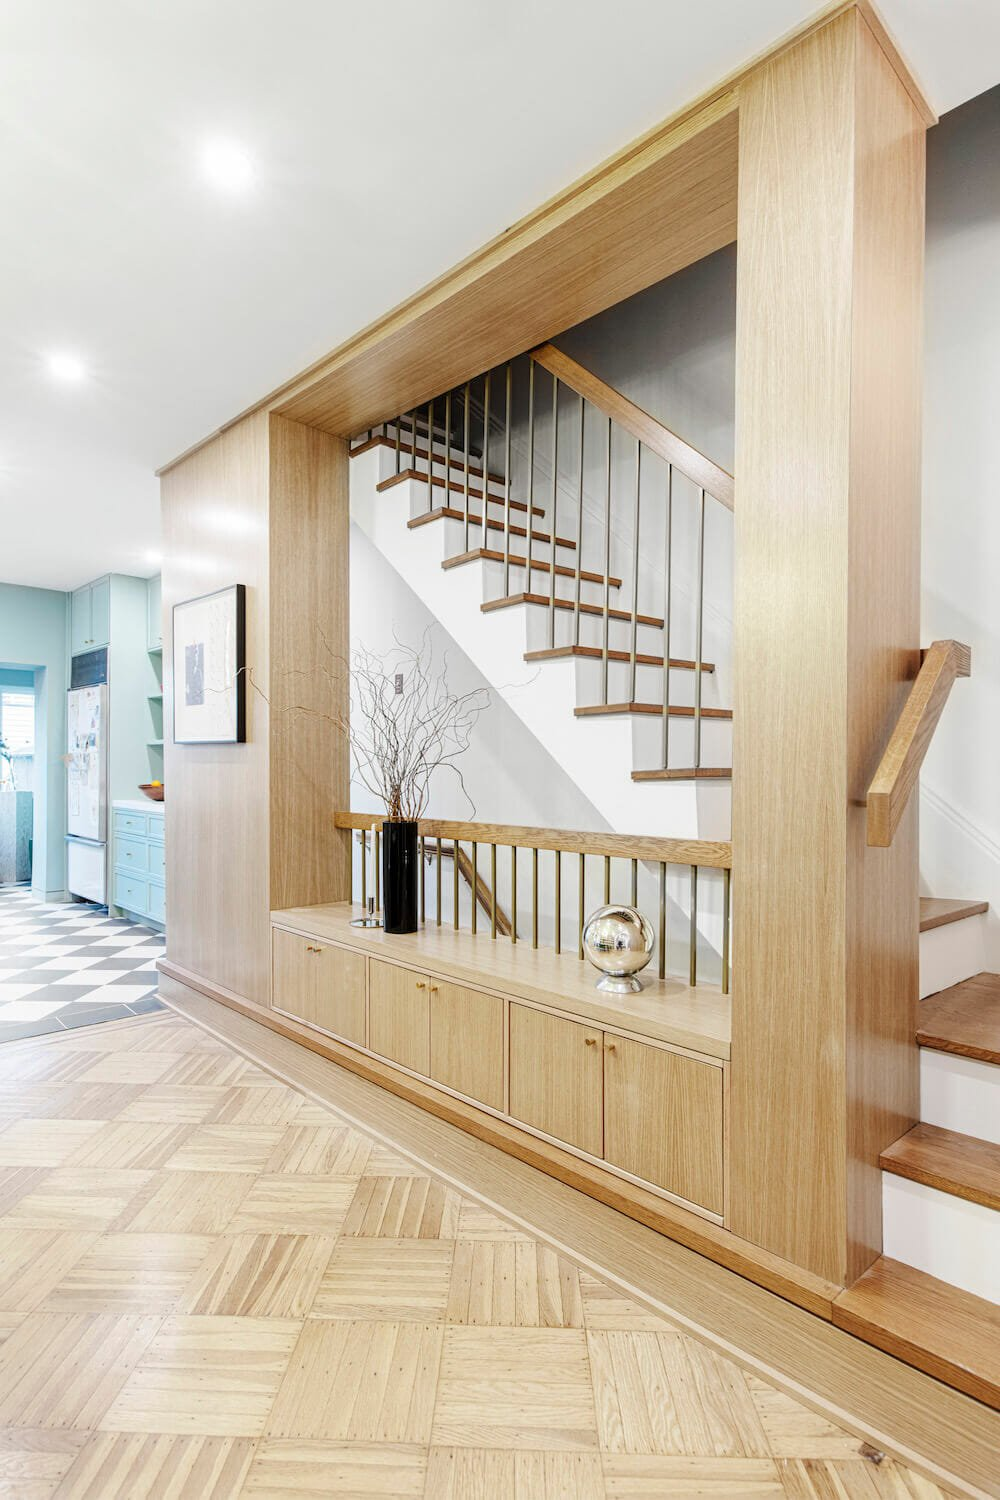 Image of an open stairway with custom storage